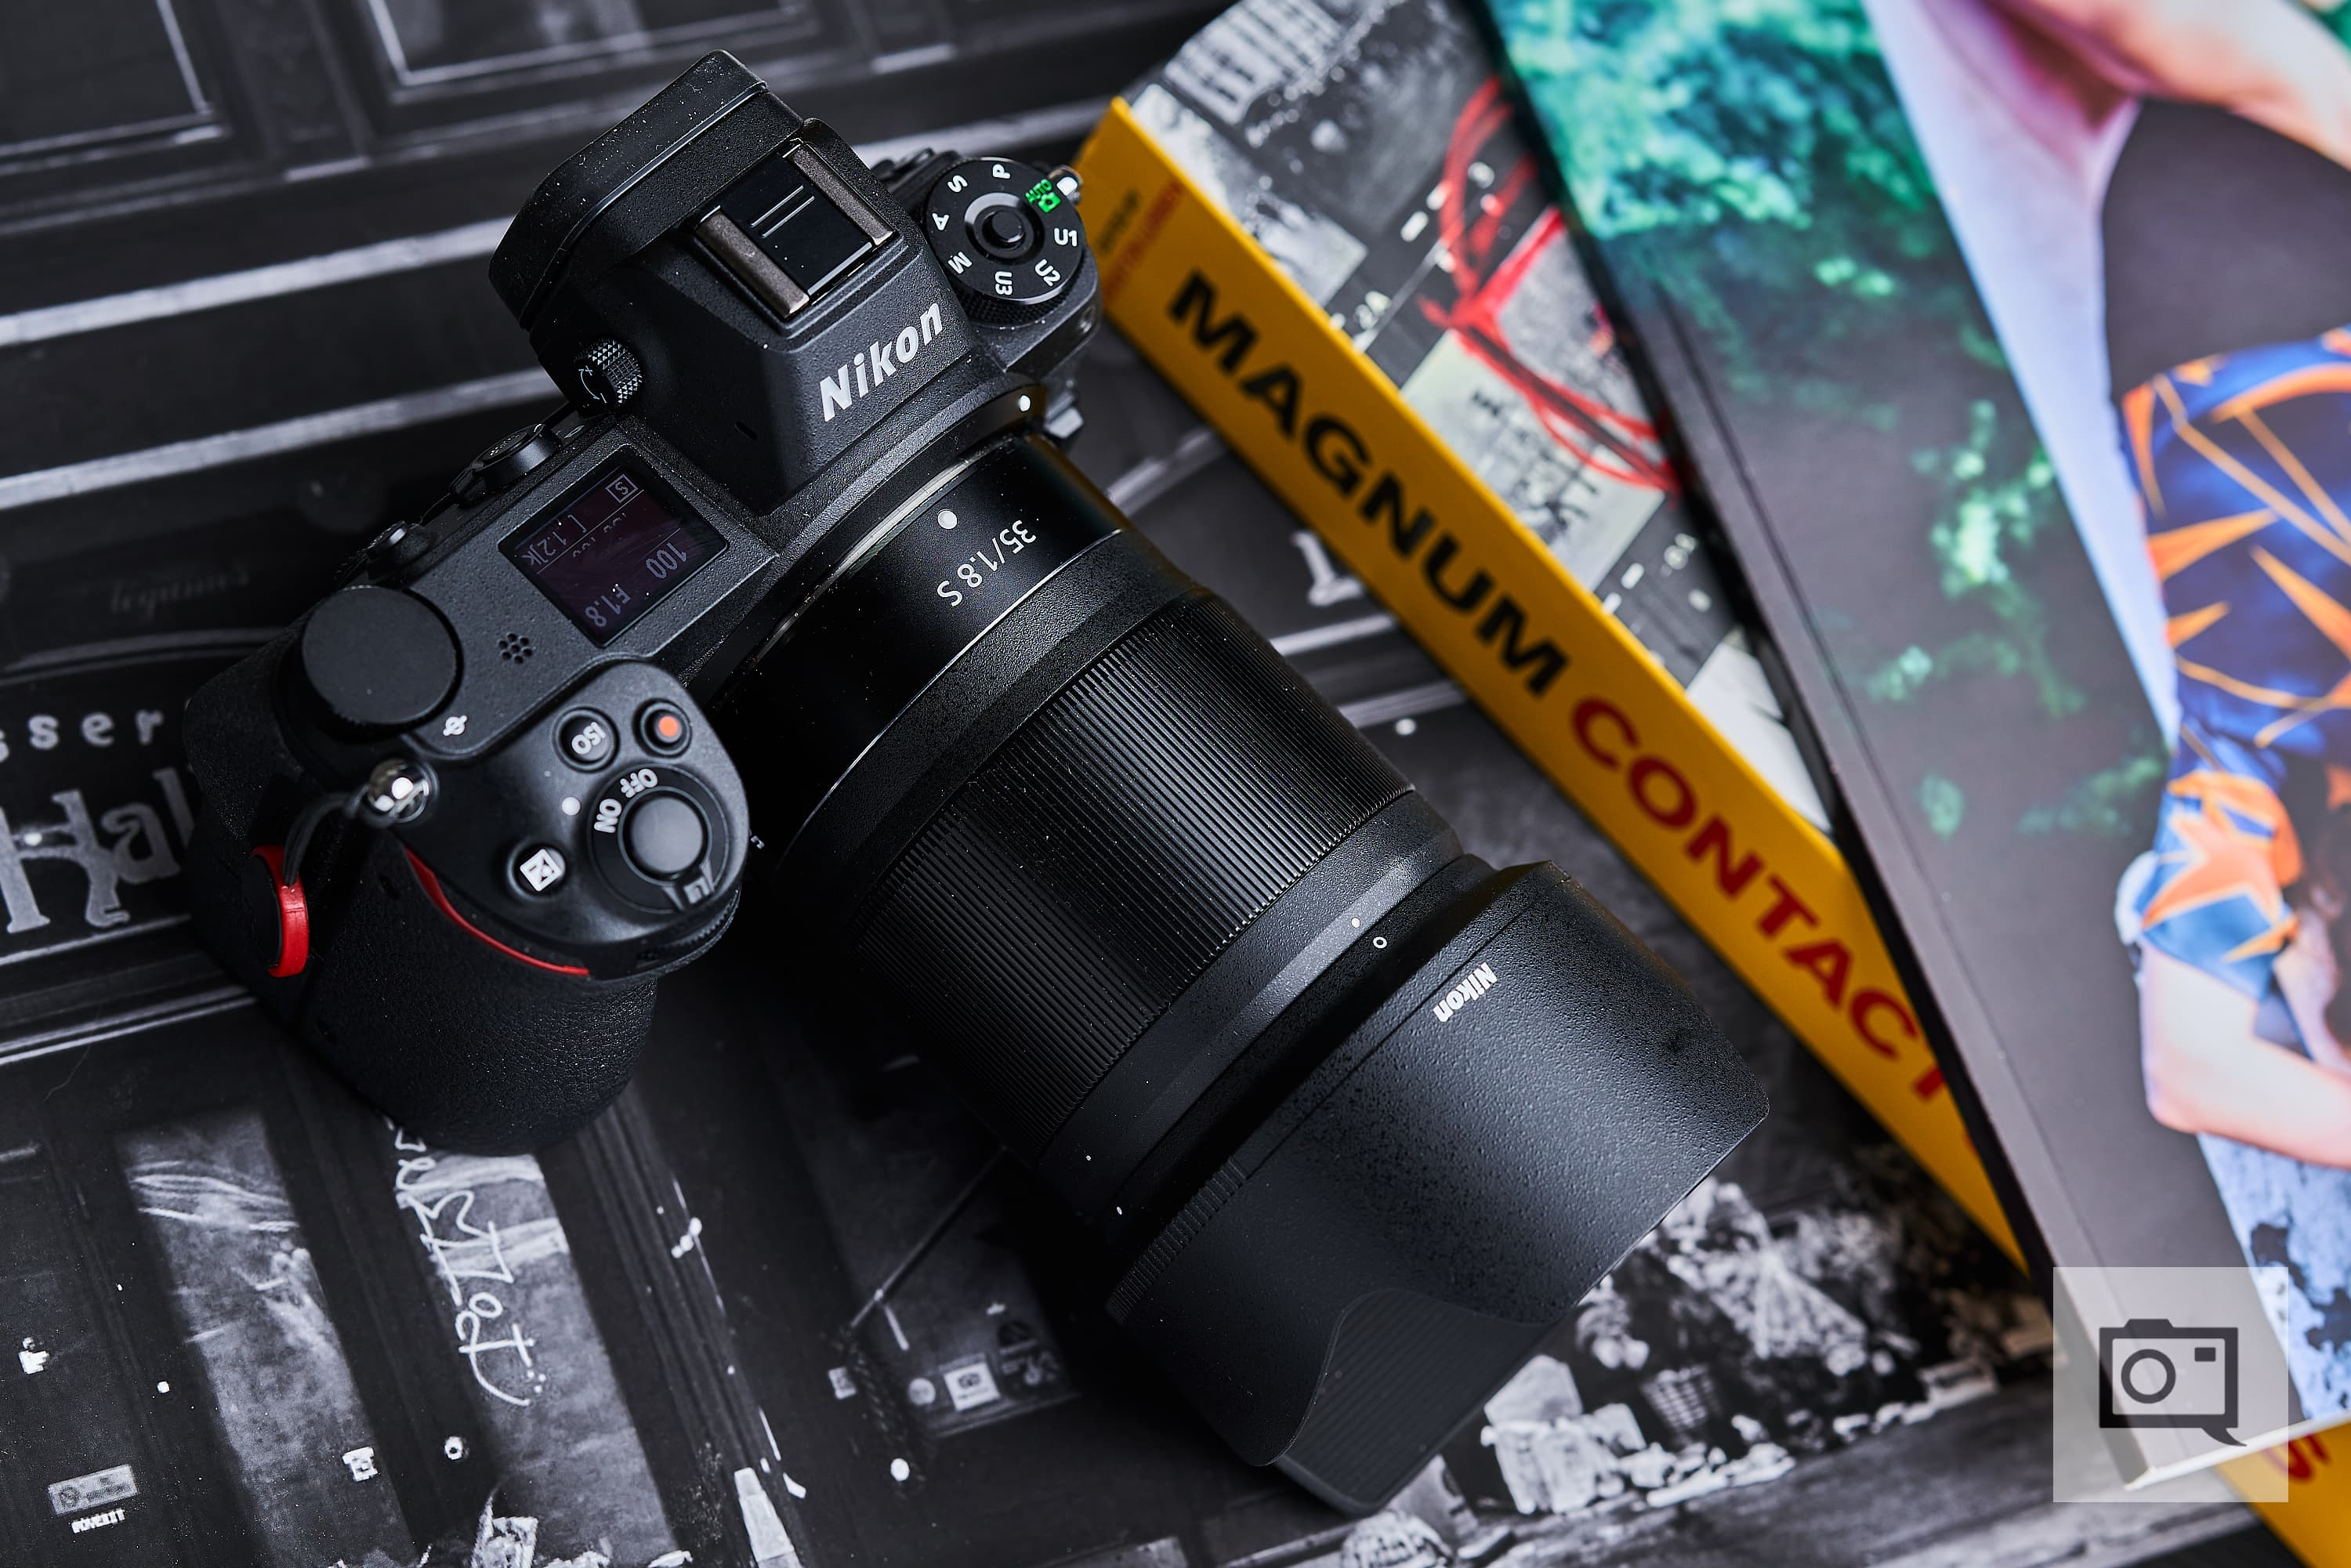 Review: Nikon NIKKOR Z 35mm f1.8 S (Nikon Z Mount)